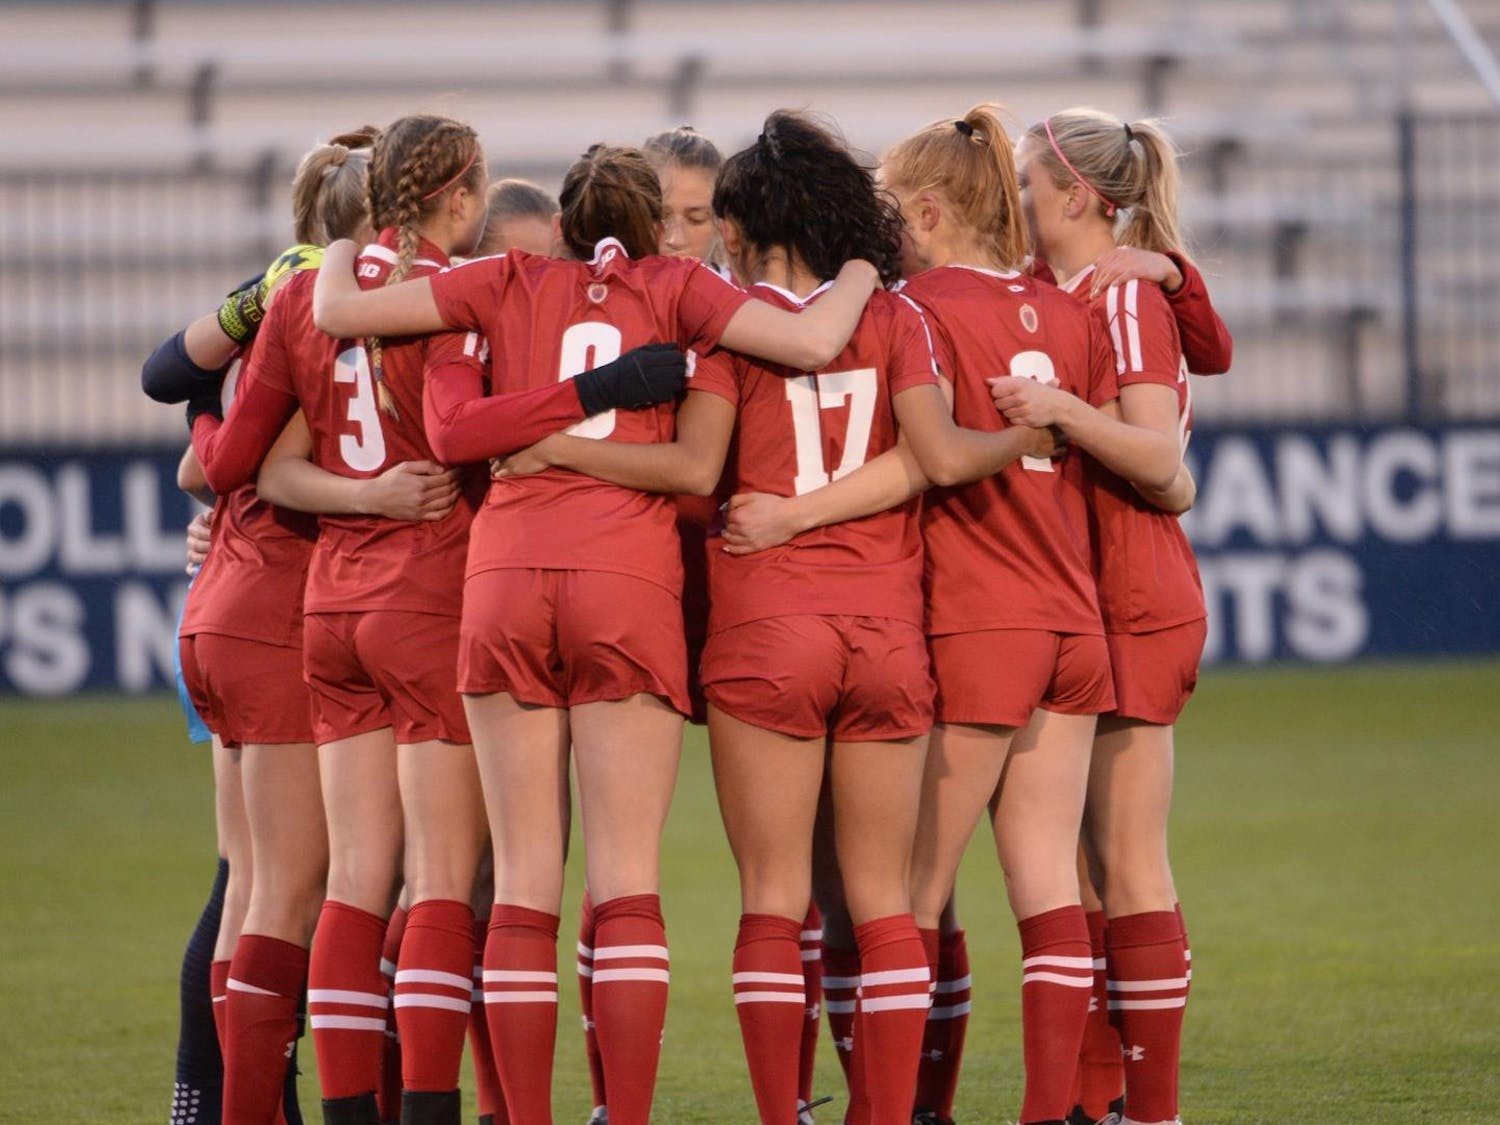 Photo of the Badger soccer team in a huddle.